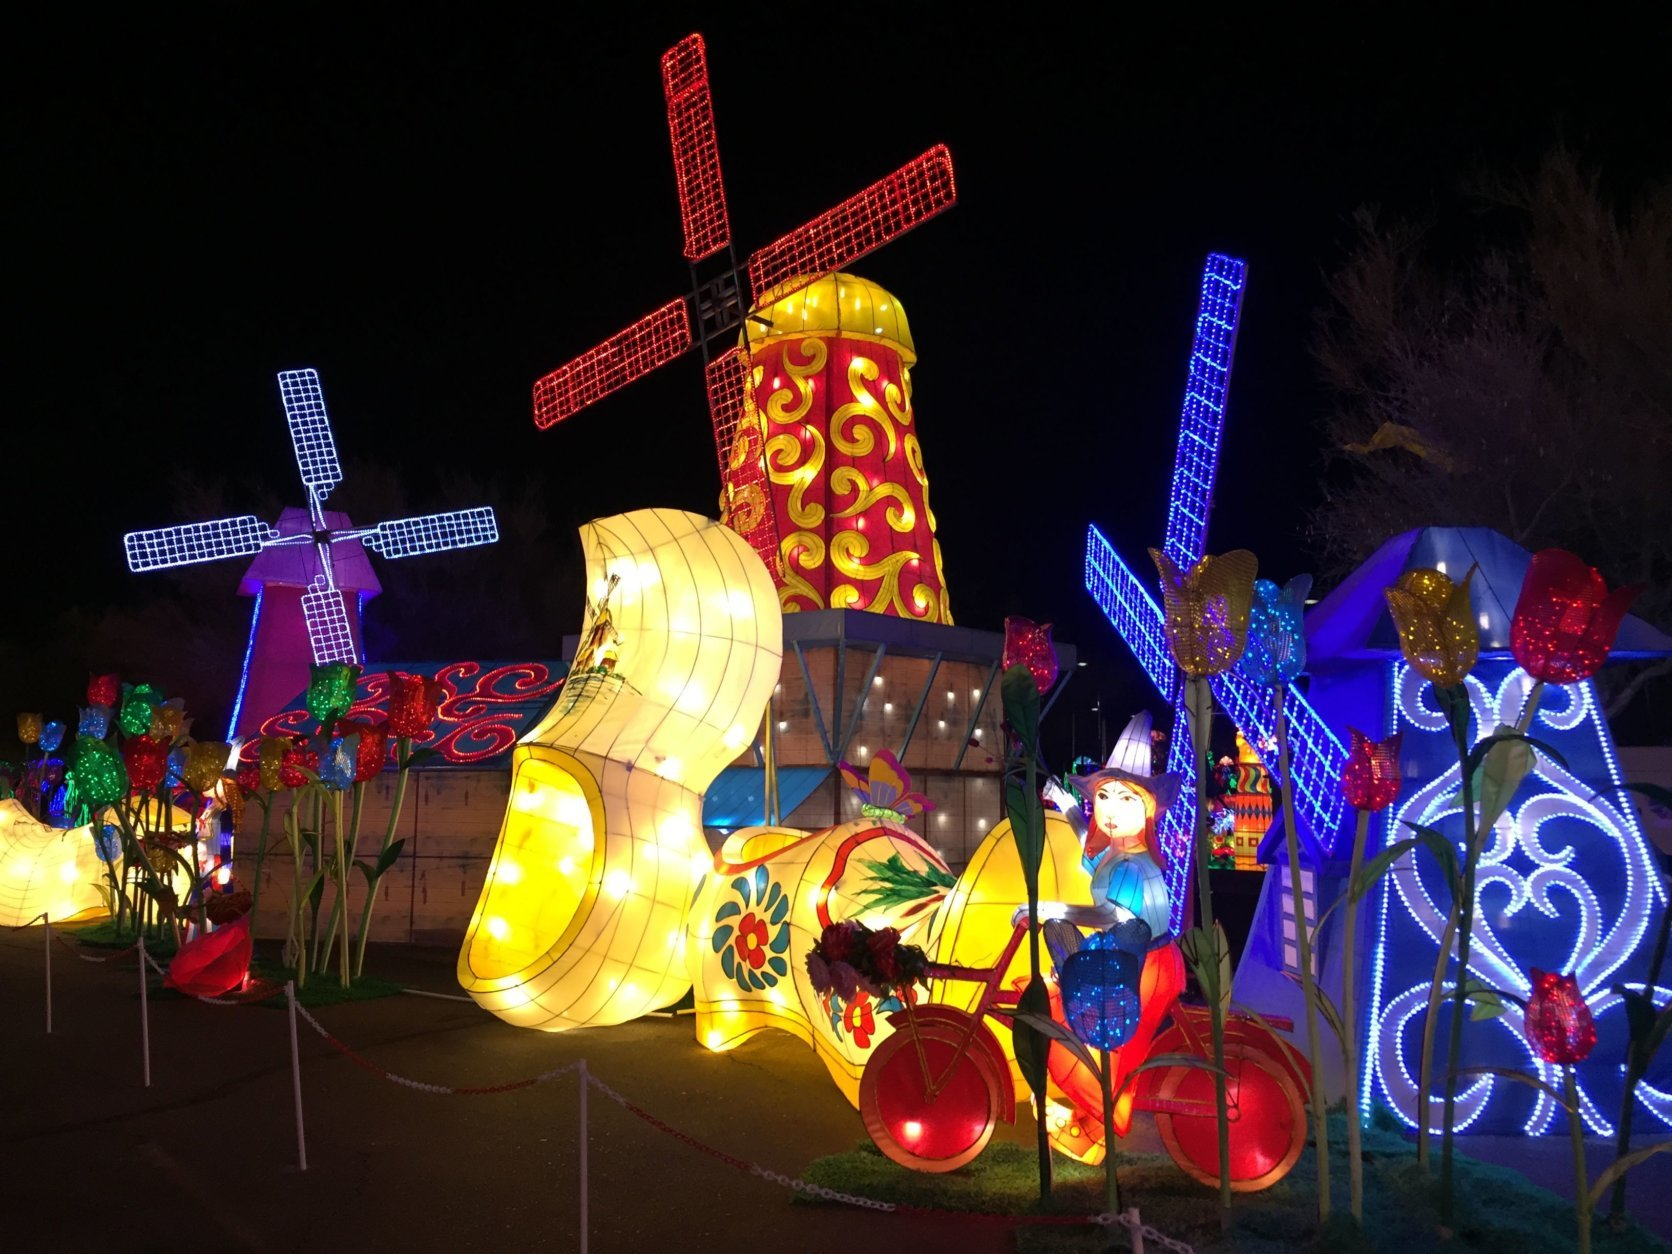 Admission is about $30 for adults and about @20 for kids. There are also family packages and admission is free on Tuesdays for members of the military, police and firefighters. (Courtesy LightUP Fest)